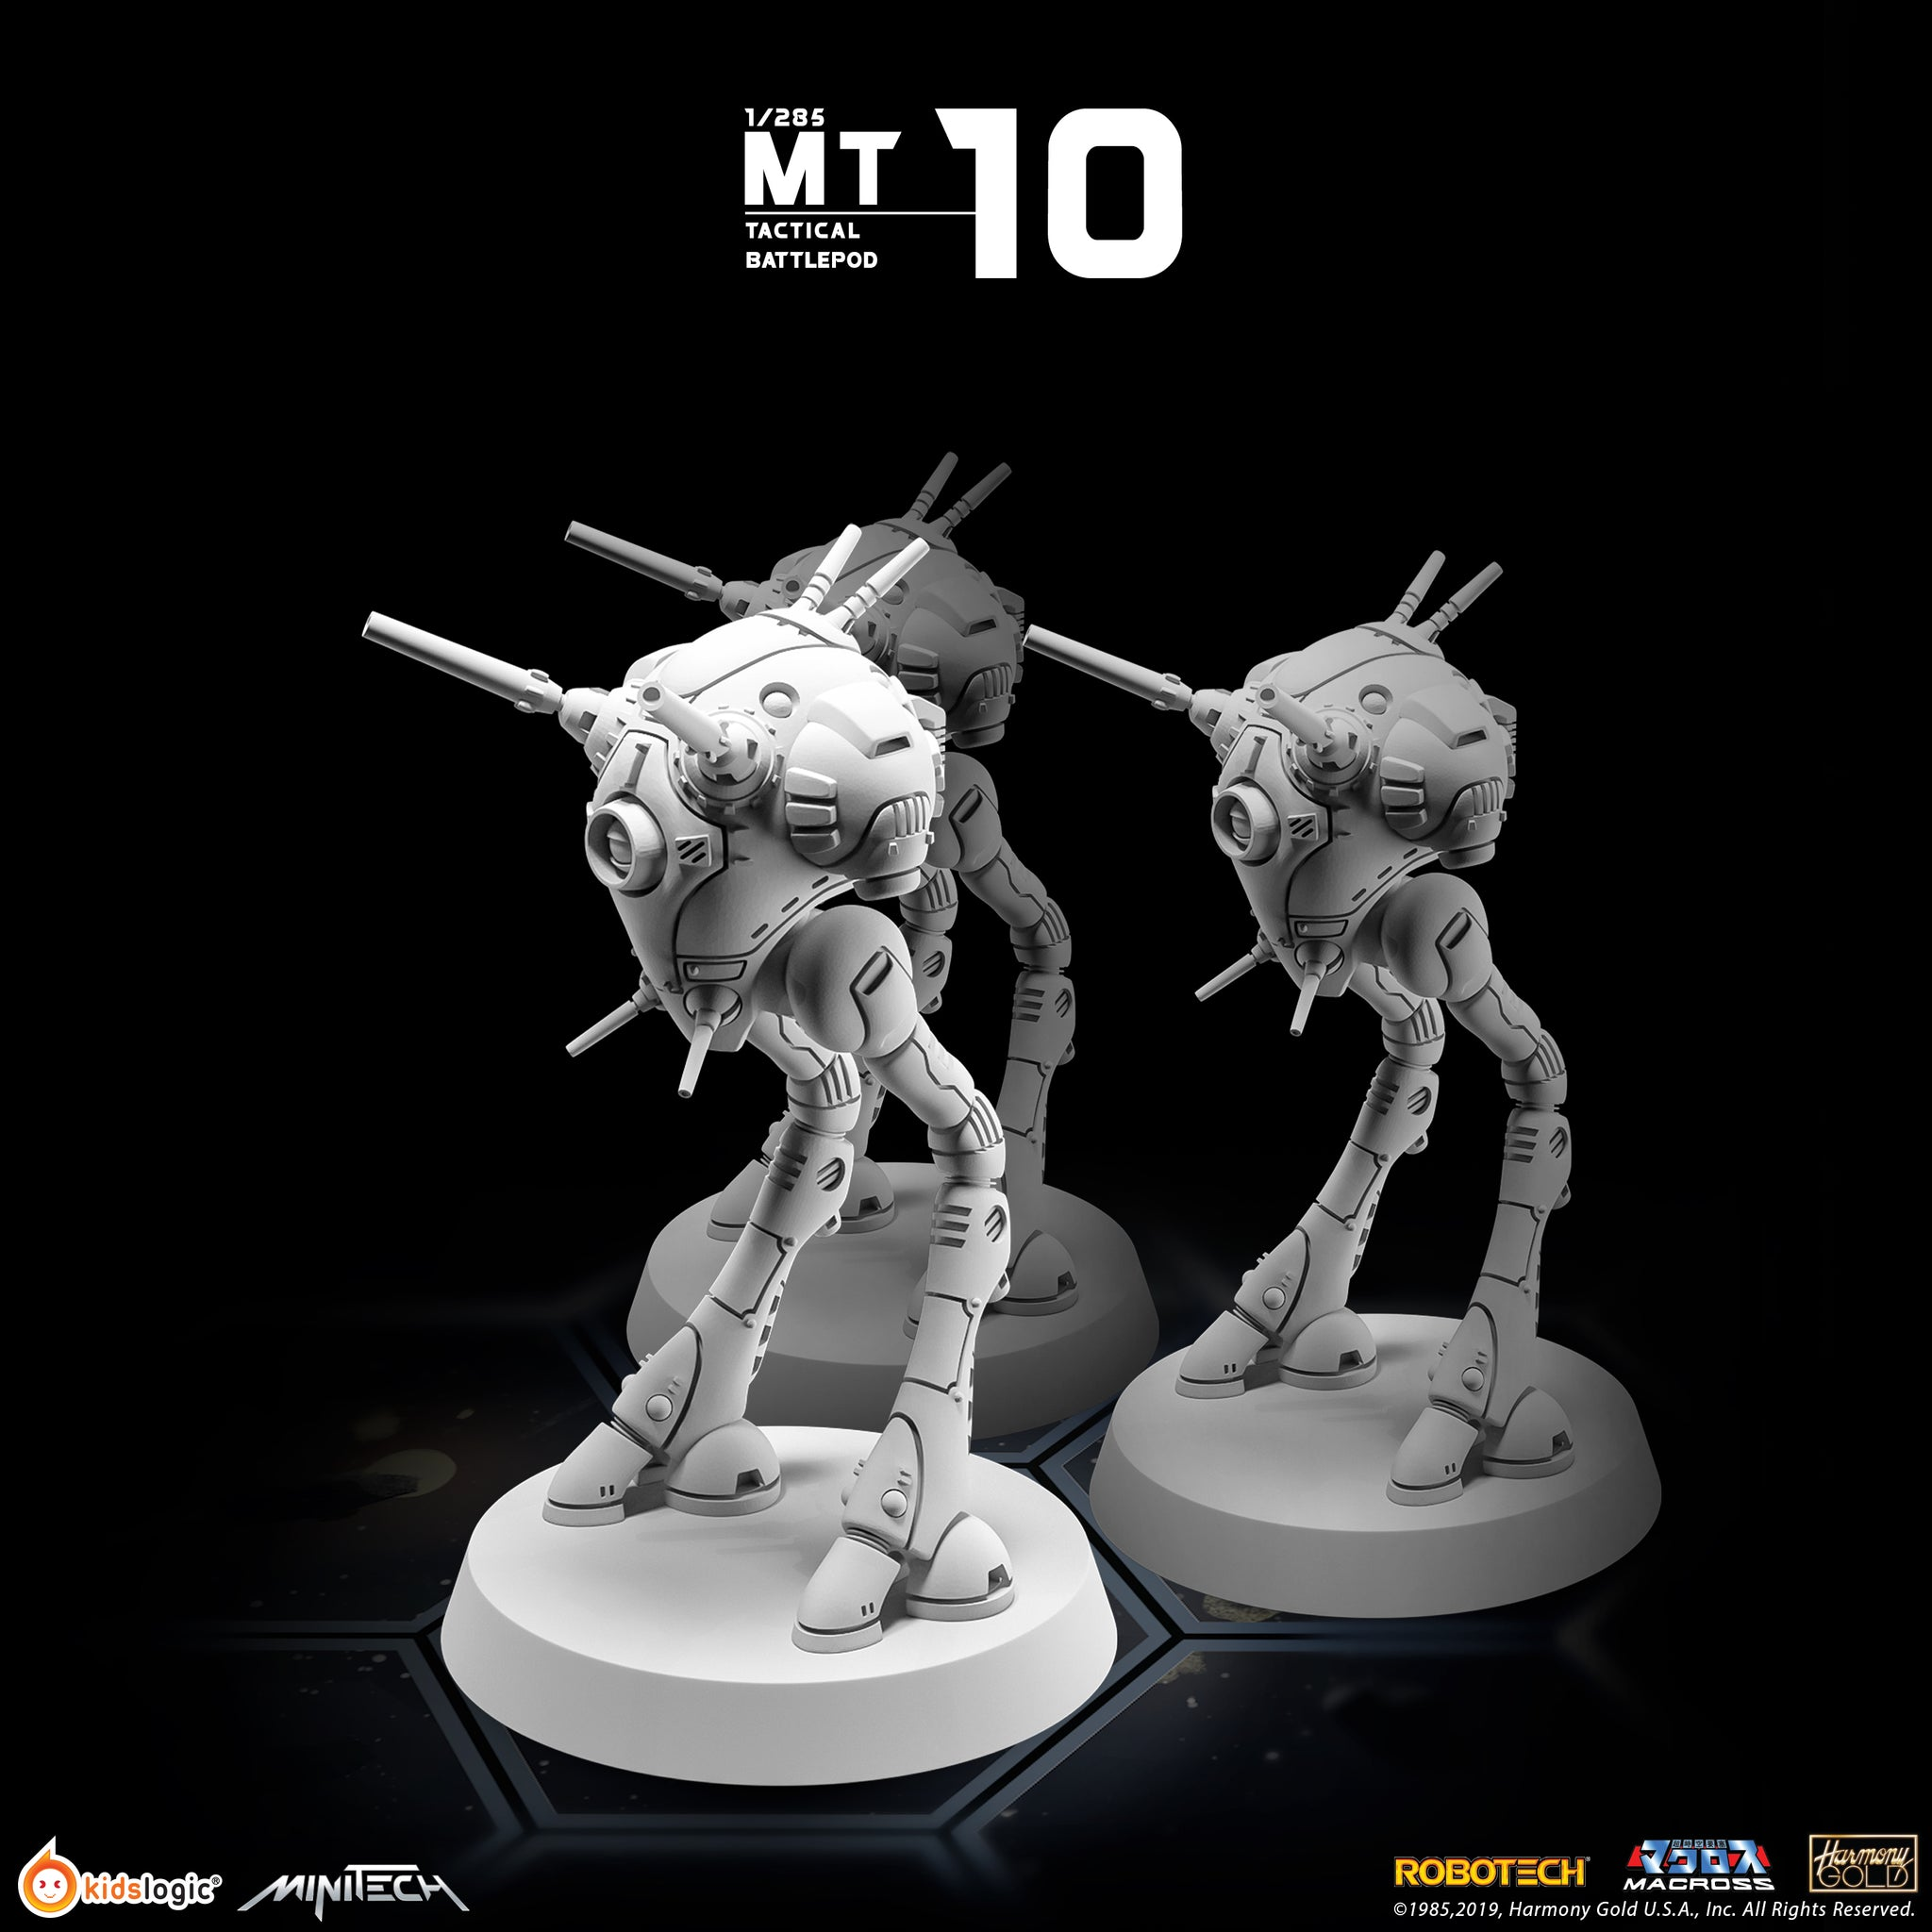 【已截訂】Kids Logic MT10 Robotech Macross Tactical Battlepod 1-285 (Set of 3) Figure